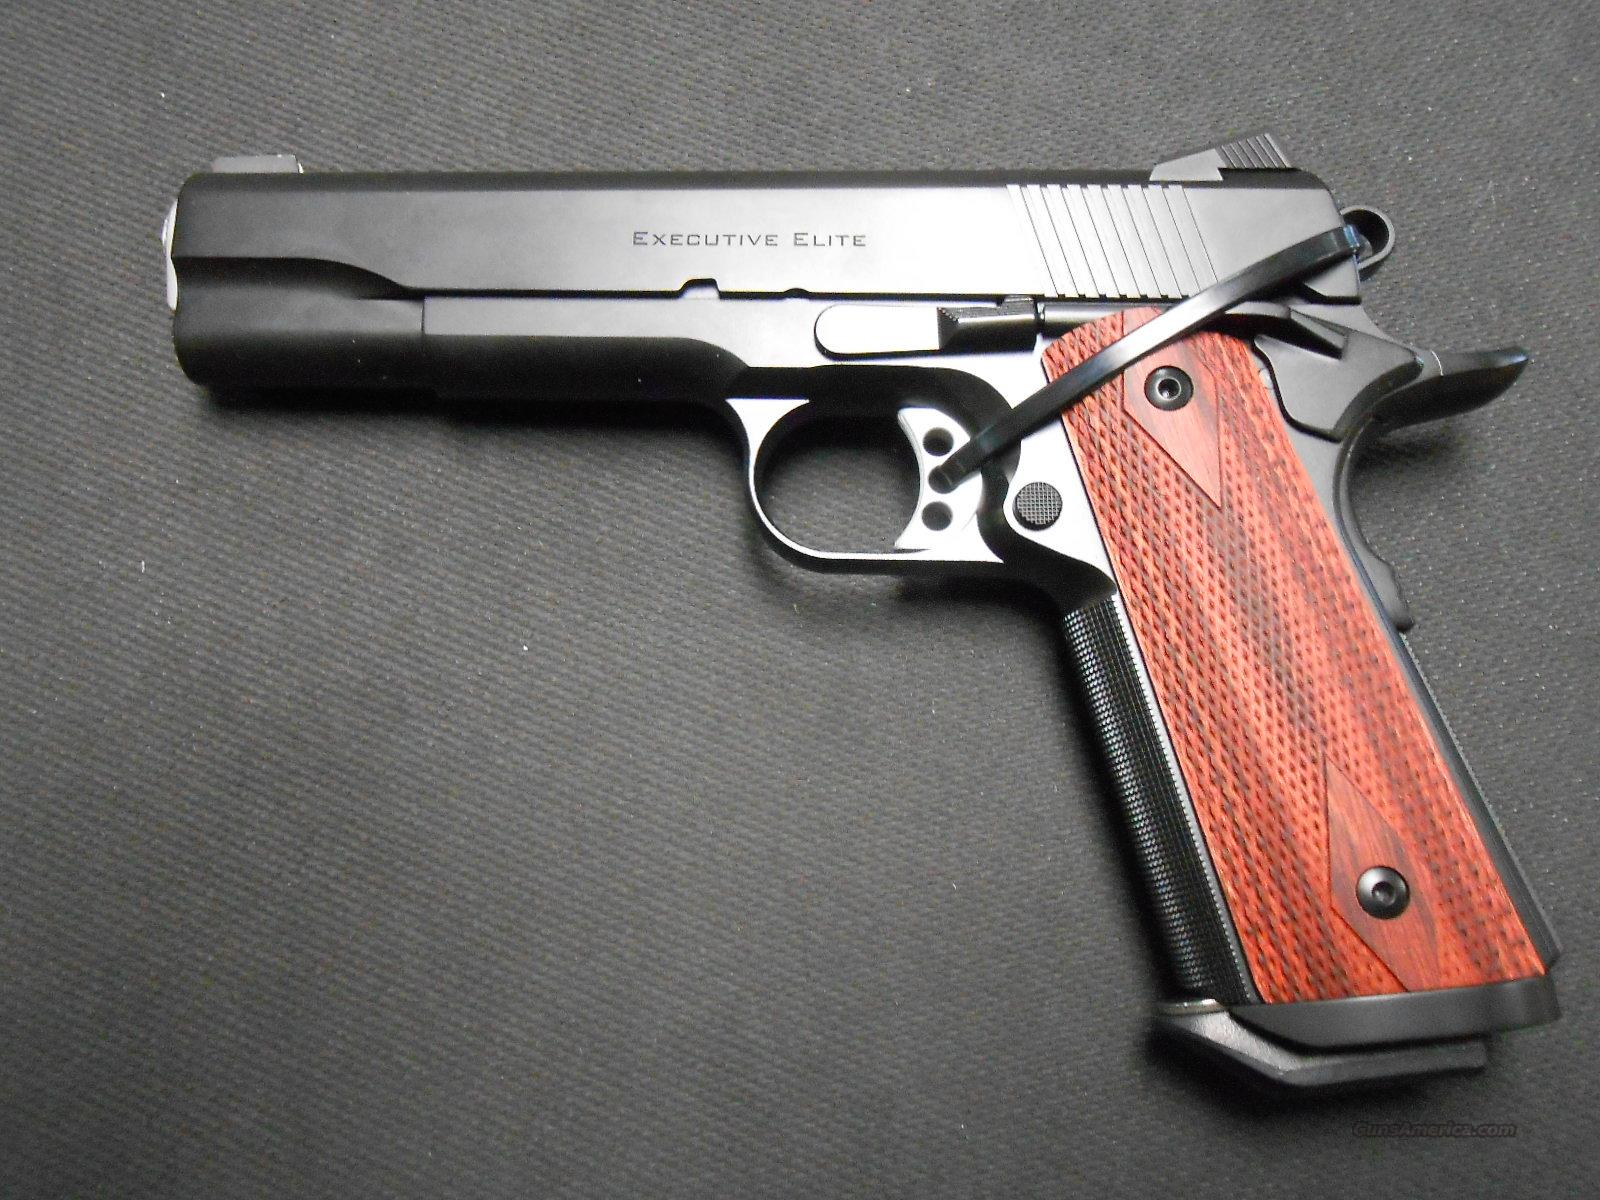 Ed Brown Exec Elite SS/Gen 3 1911 45acp  NIB!  Guns > Pistols > Ed Brown Pistols